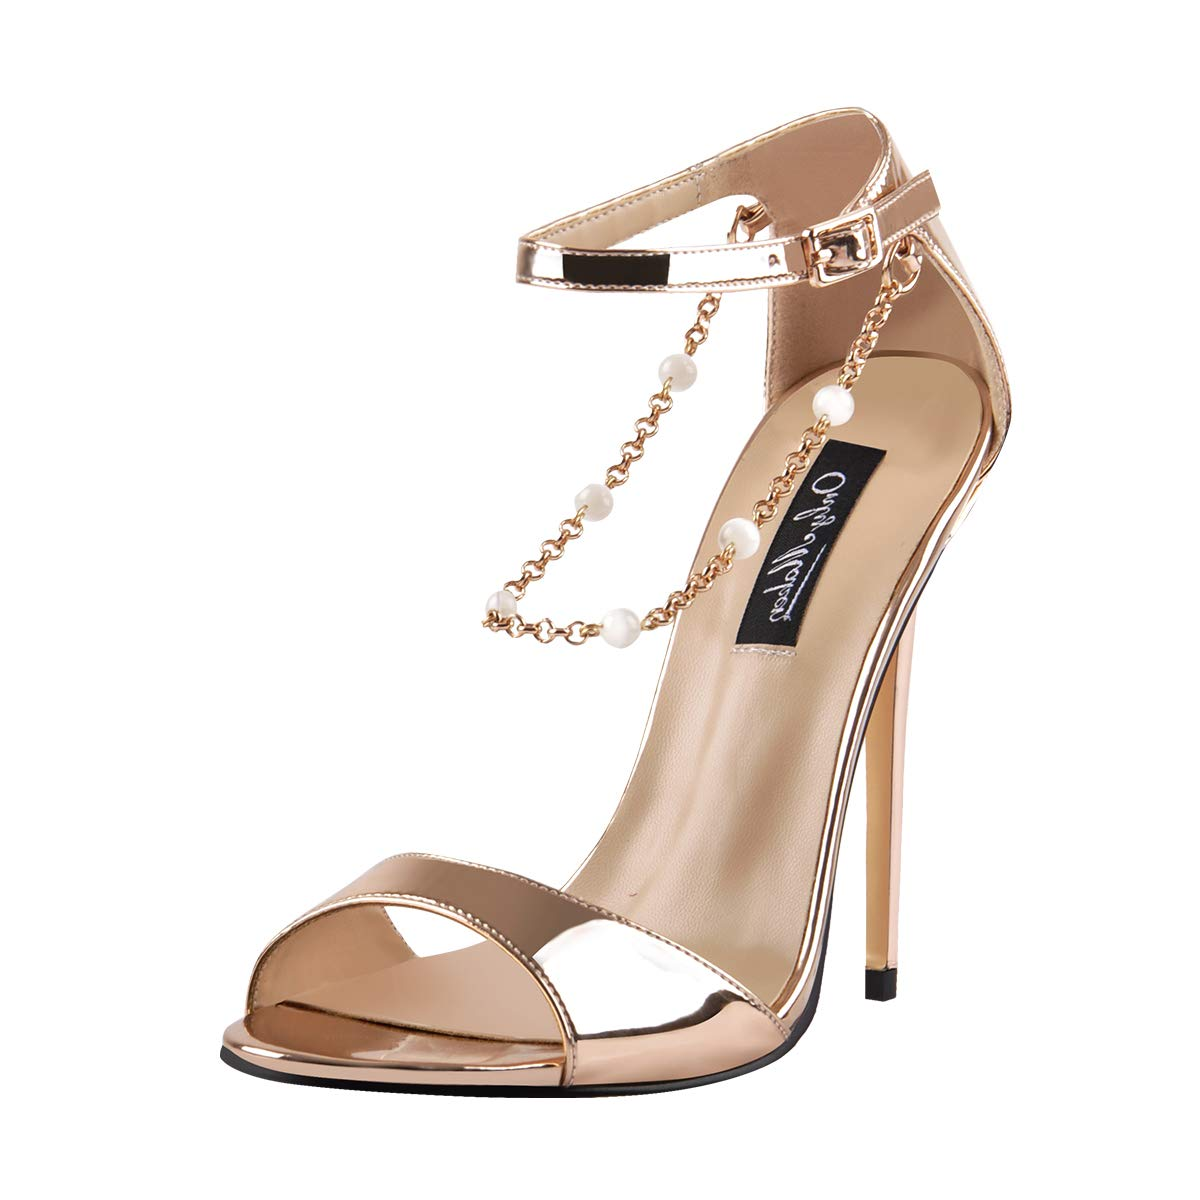 afc872edef261 Amazon.com | Onlymaker Womens Beaded Chain Ankle Strappy Stilettos High  Heel Sandals Open Toe Single Band Pearl Sandals Shoes | Sandals